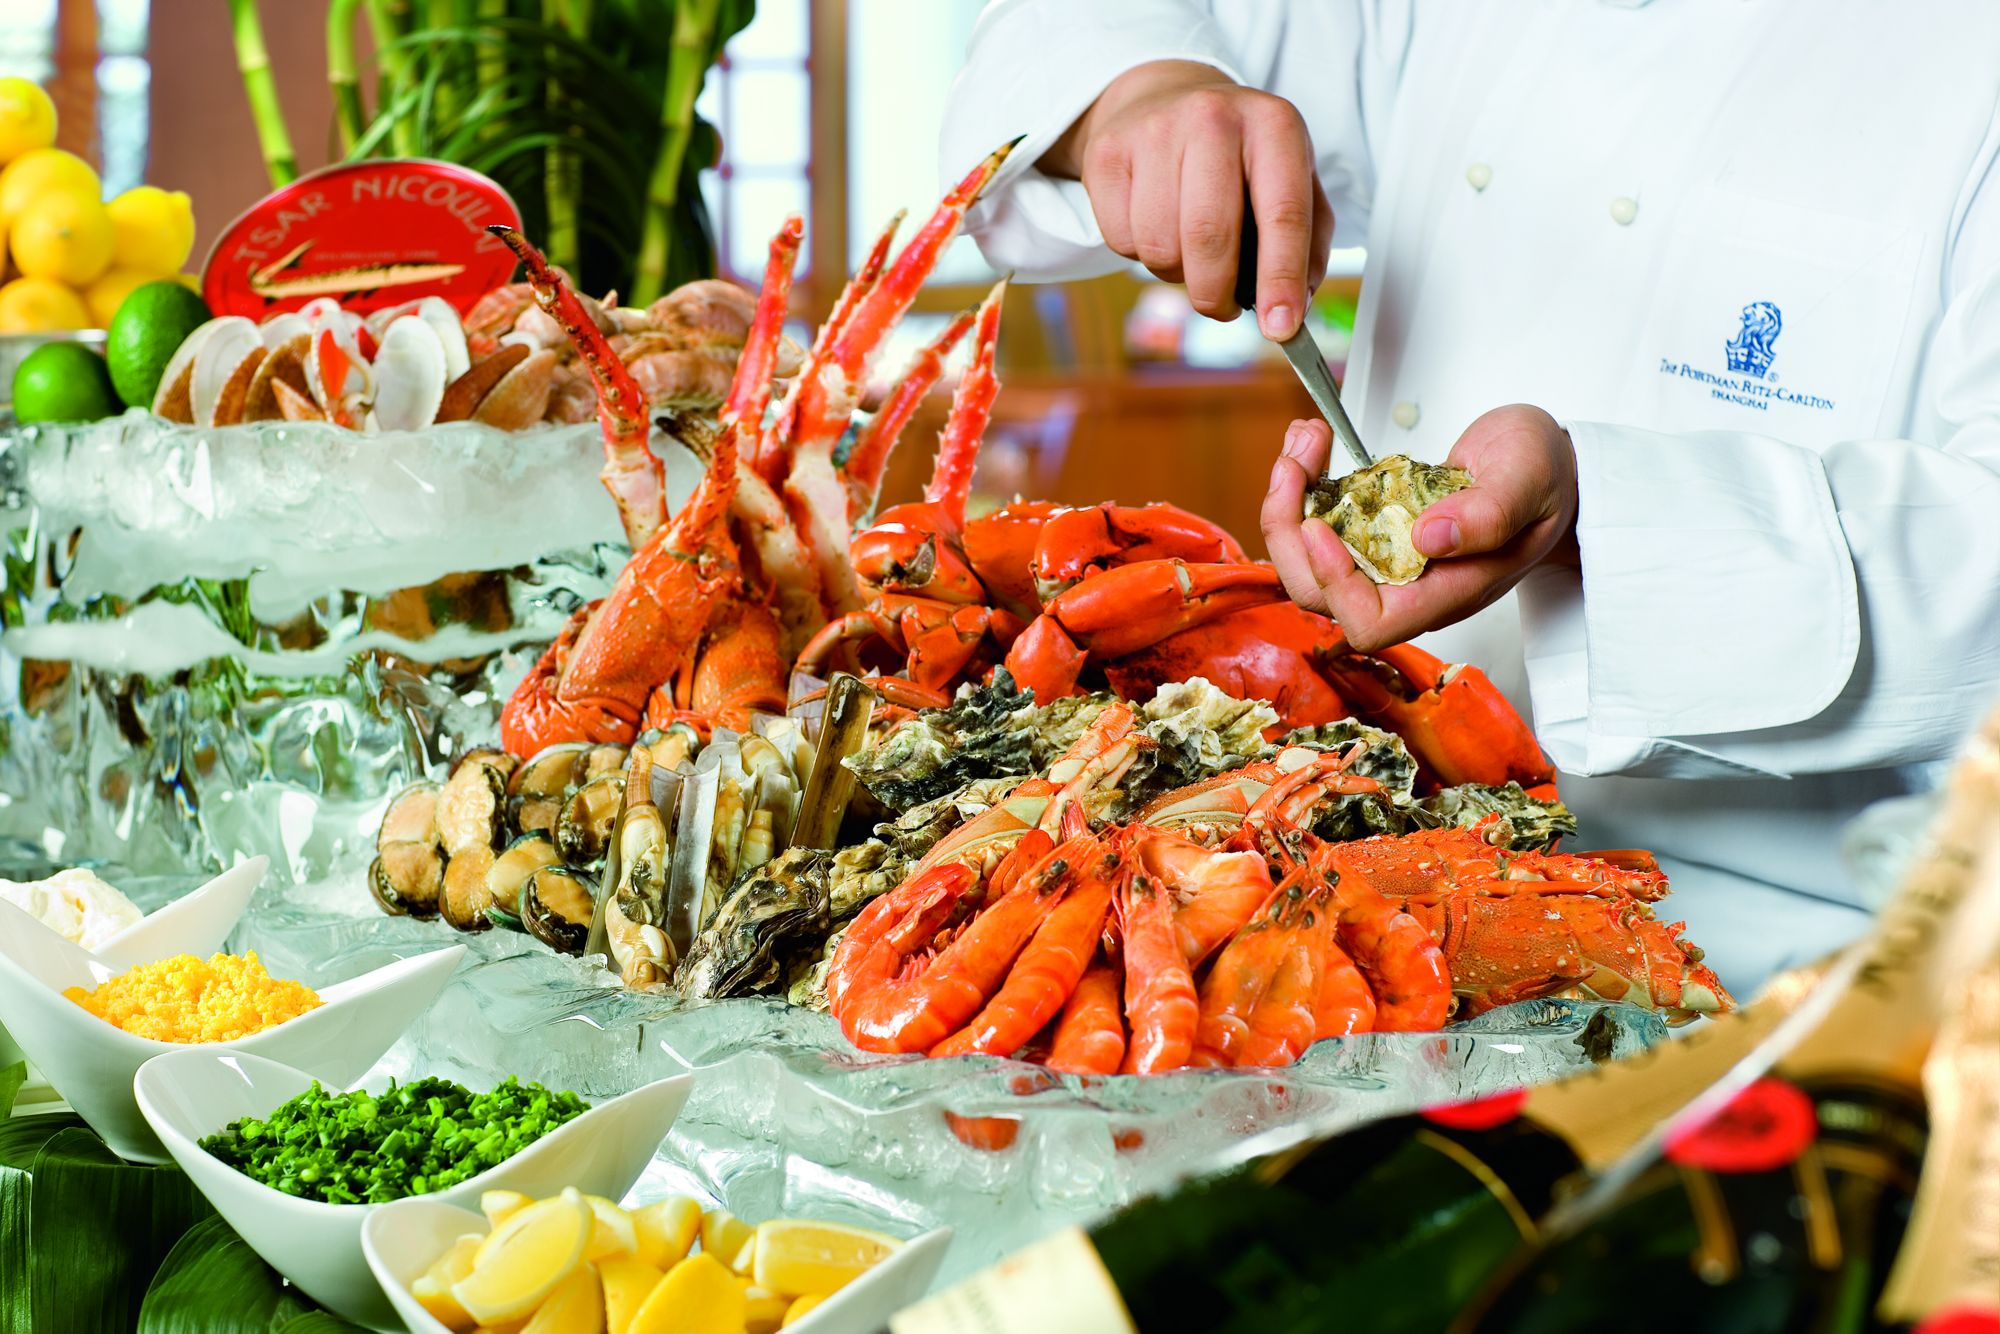 Chef puts the finishing touches on a lavish seafood buffet